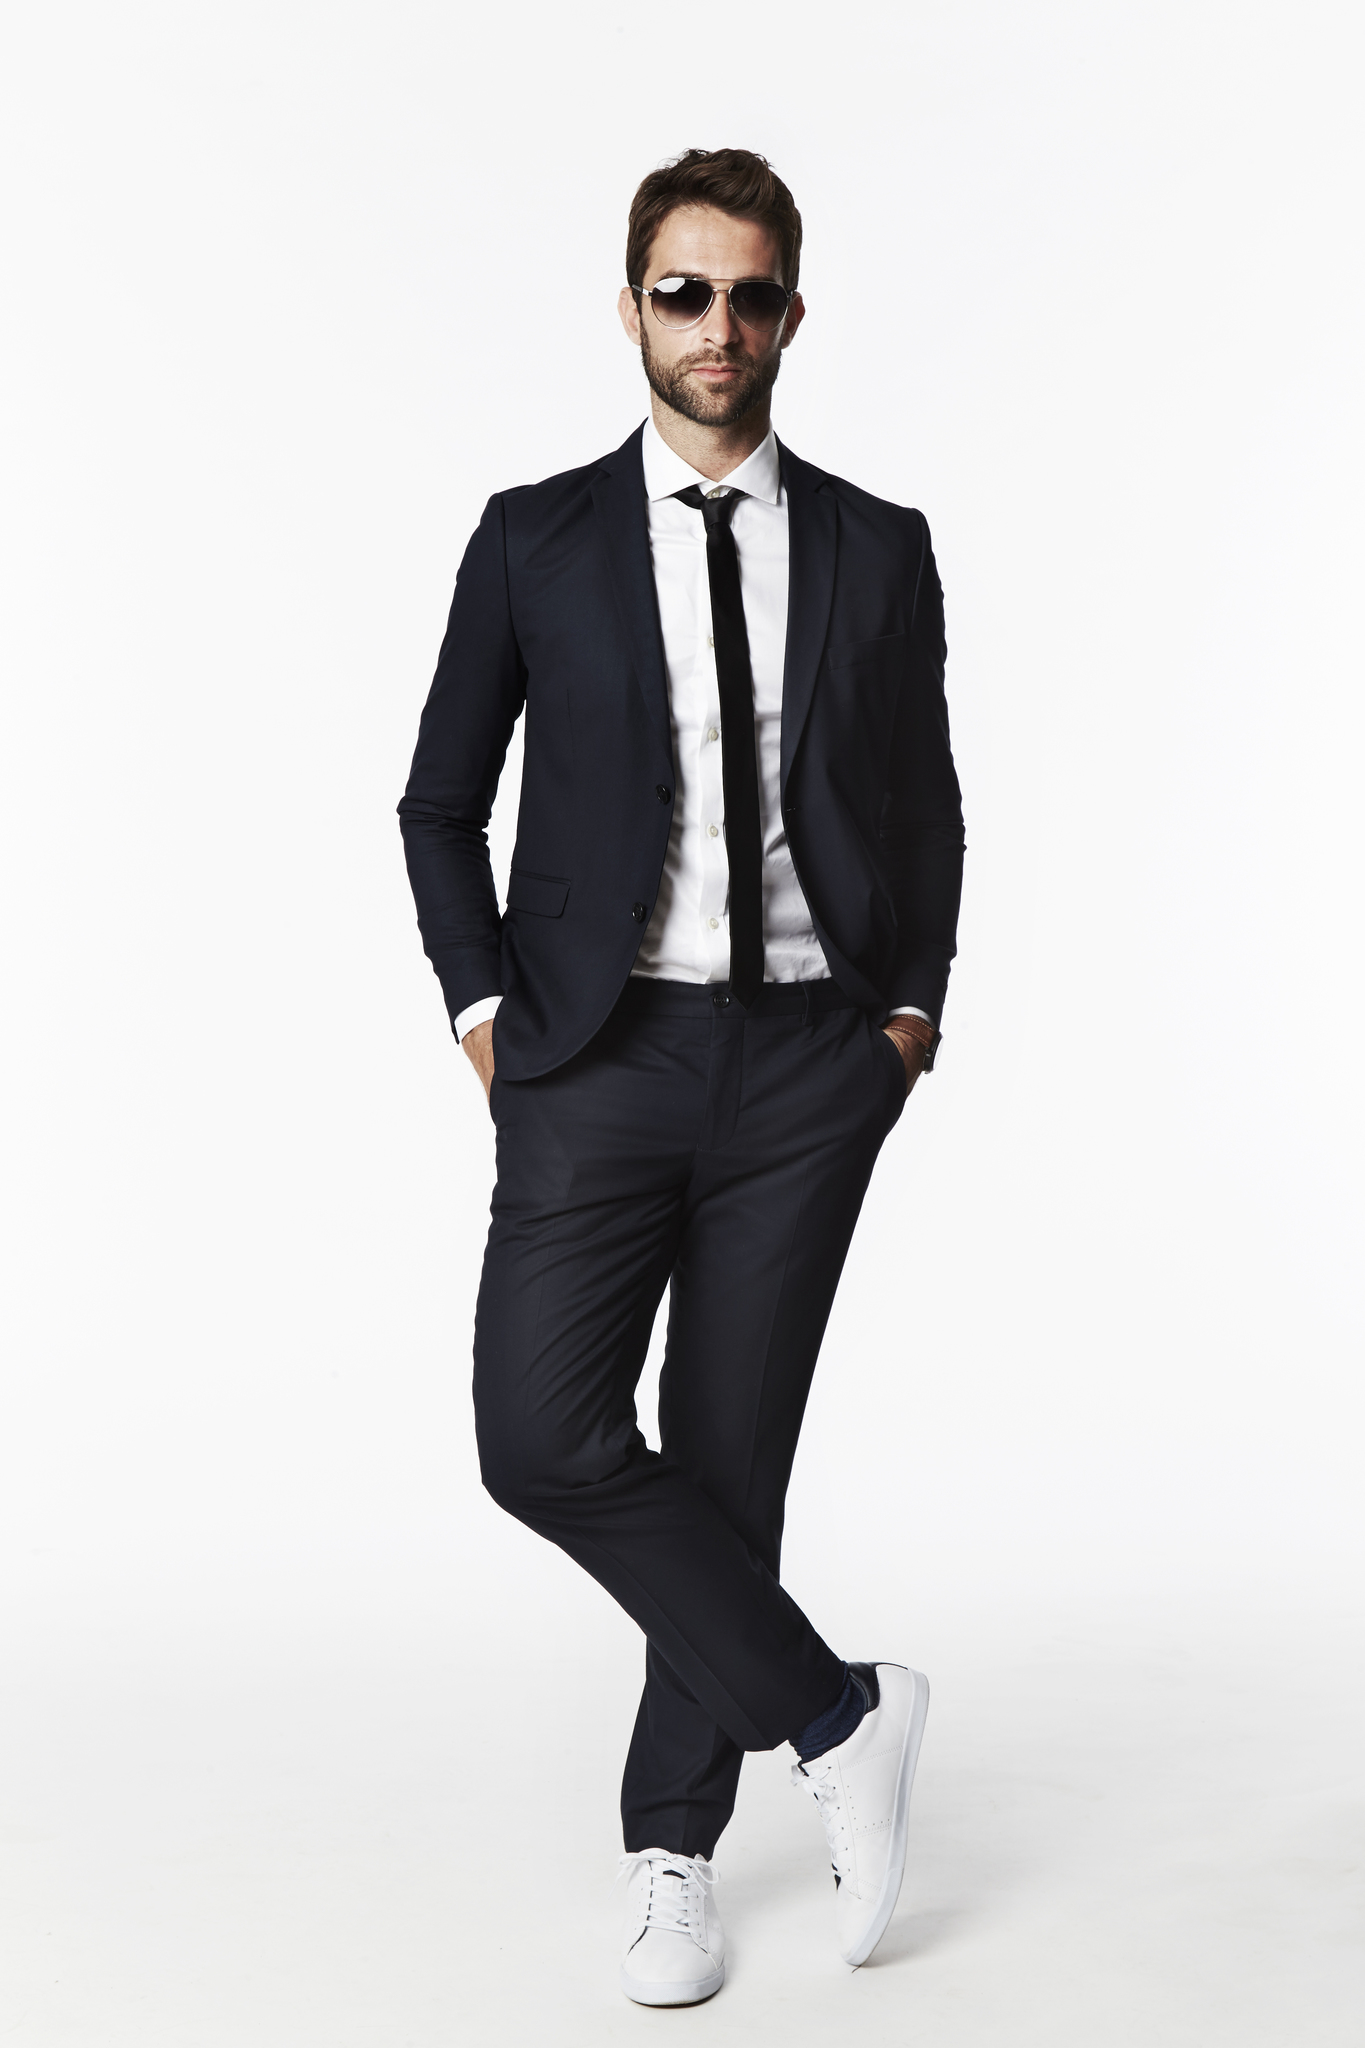 Suits and Tennis Shoes — What Gives